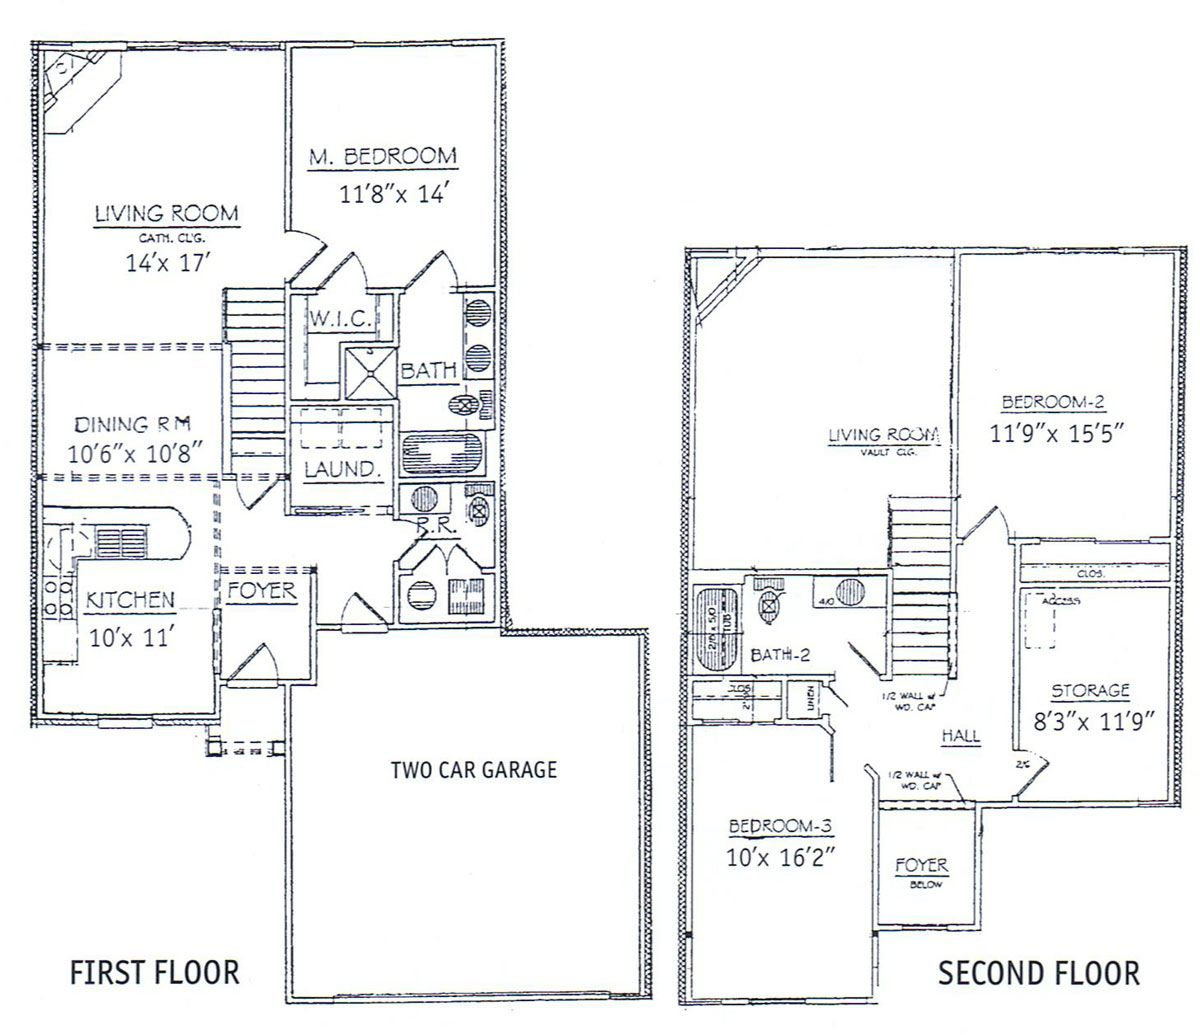 3 bedrooms floor plans 2 story bdrm basement the two for 3 bedroom floorplans